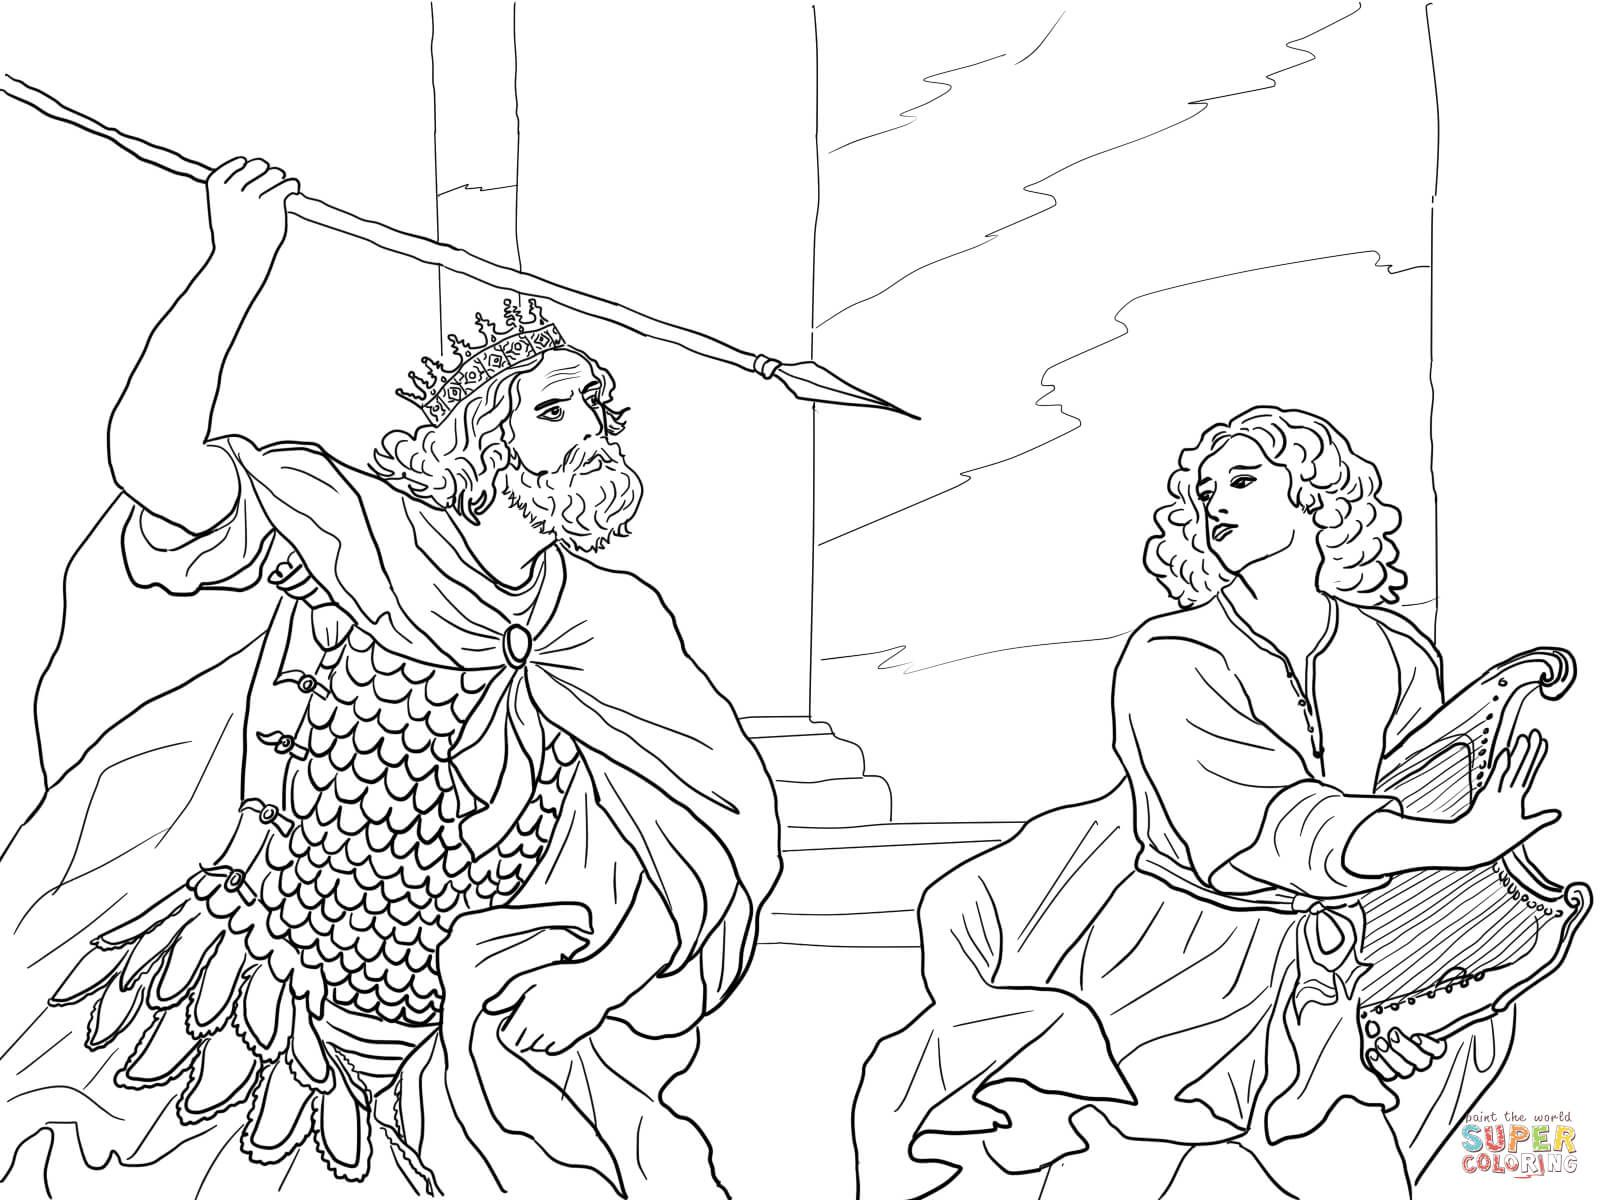 David Flees From Saul Coloring Page